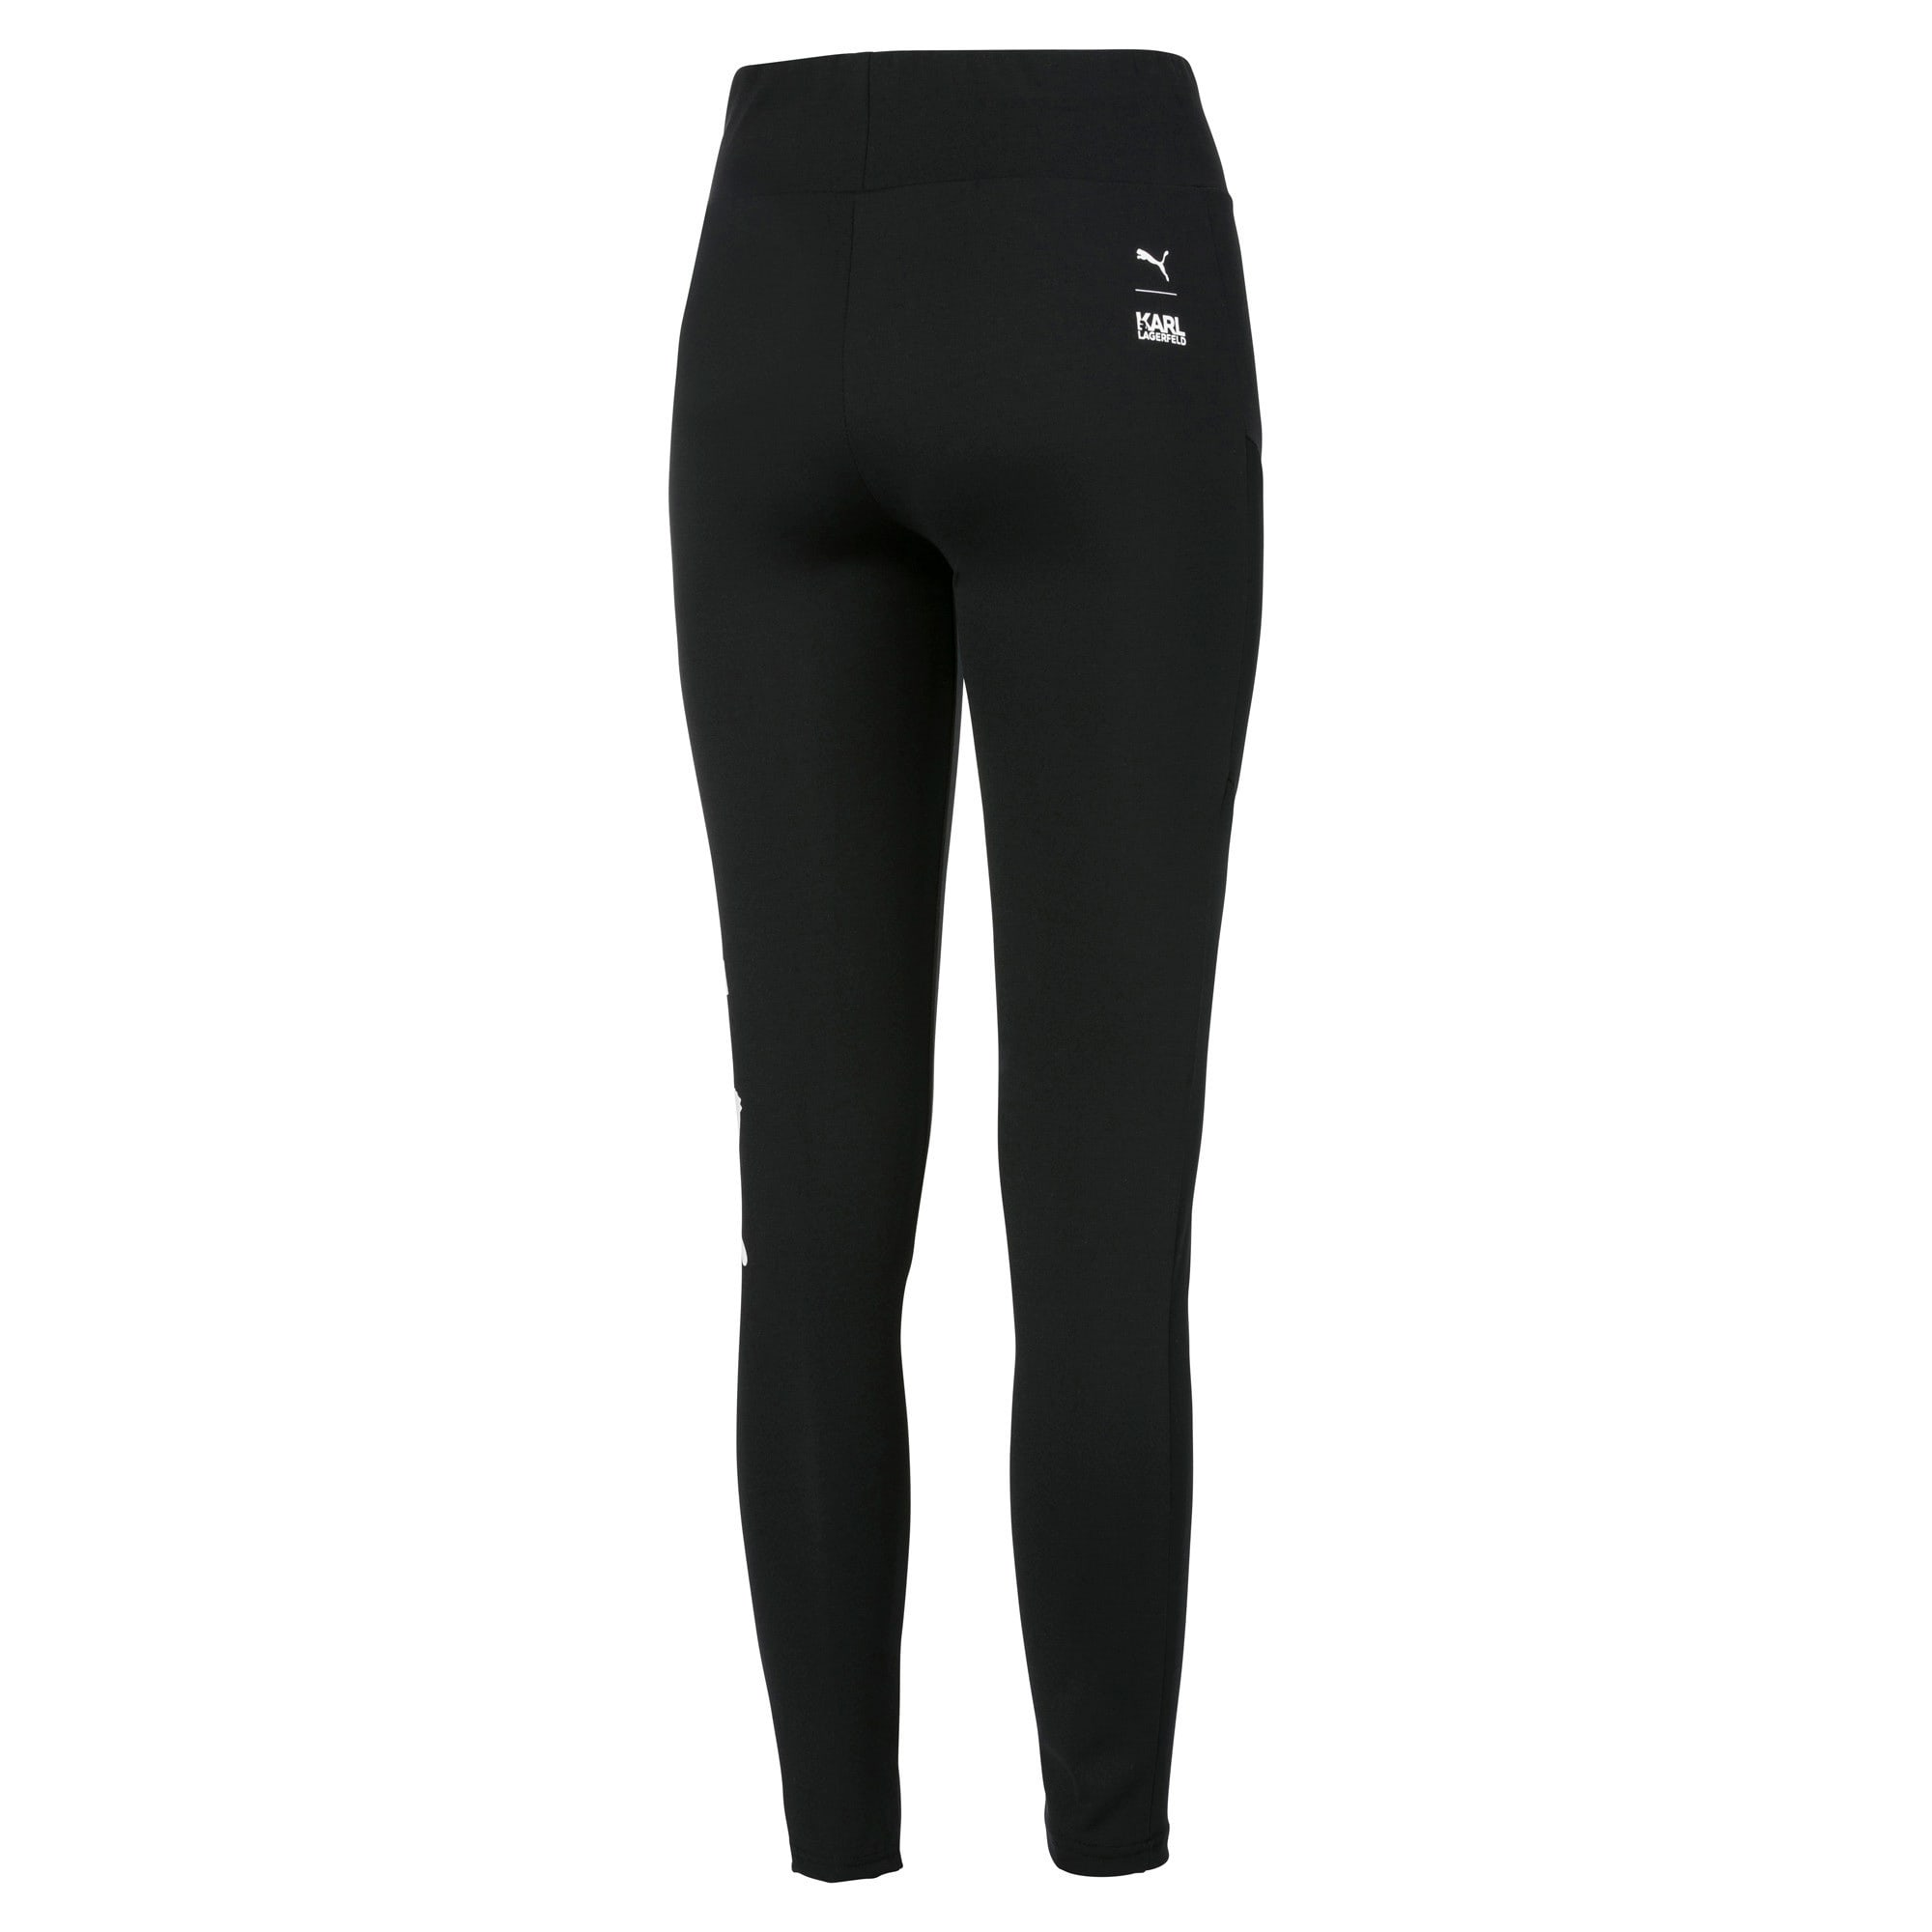 Thumbnail 5 of PUMA x KARL LAGERFELD Women's Leggings, Puma Black, medium